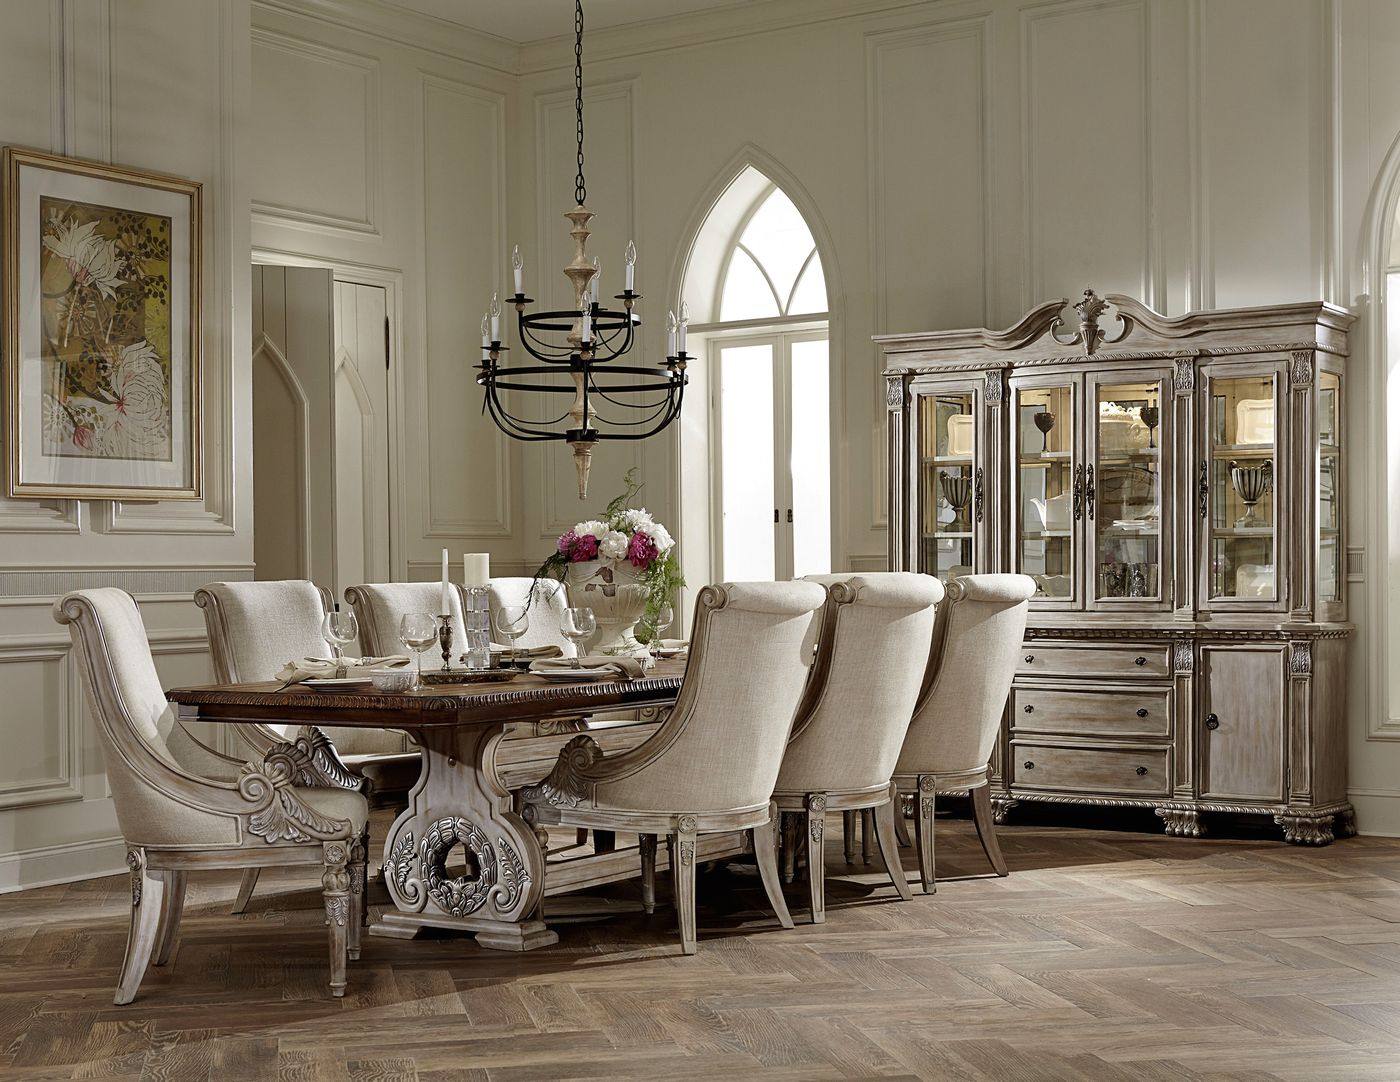 Formal Dining Room Chairs Orleans Ii White Wash Traditional Formal Dining Room